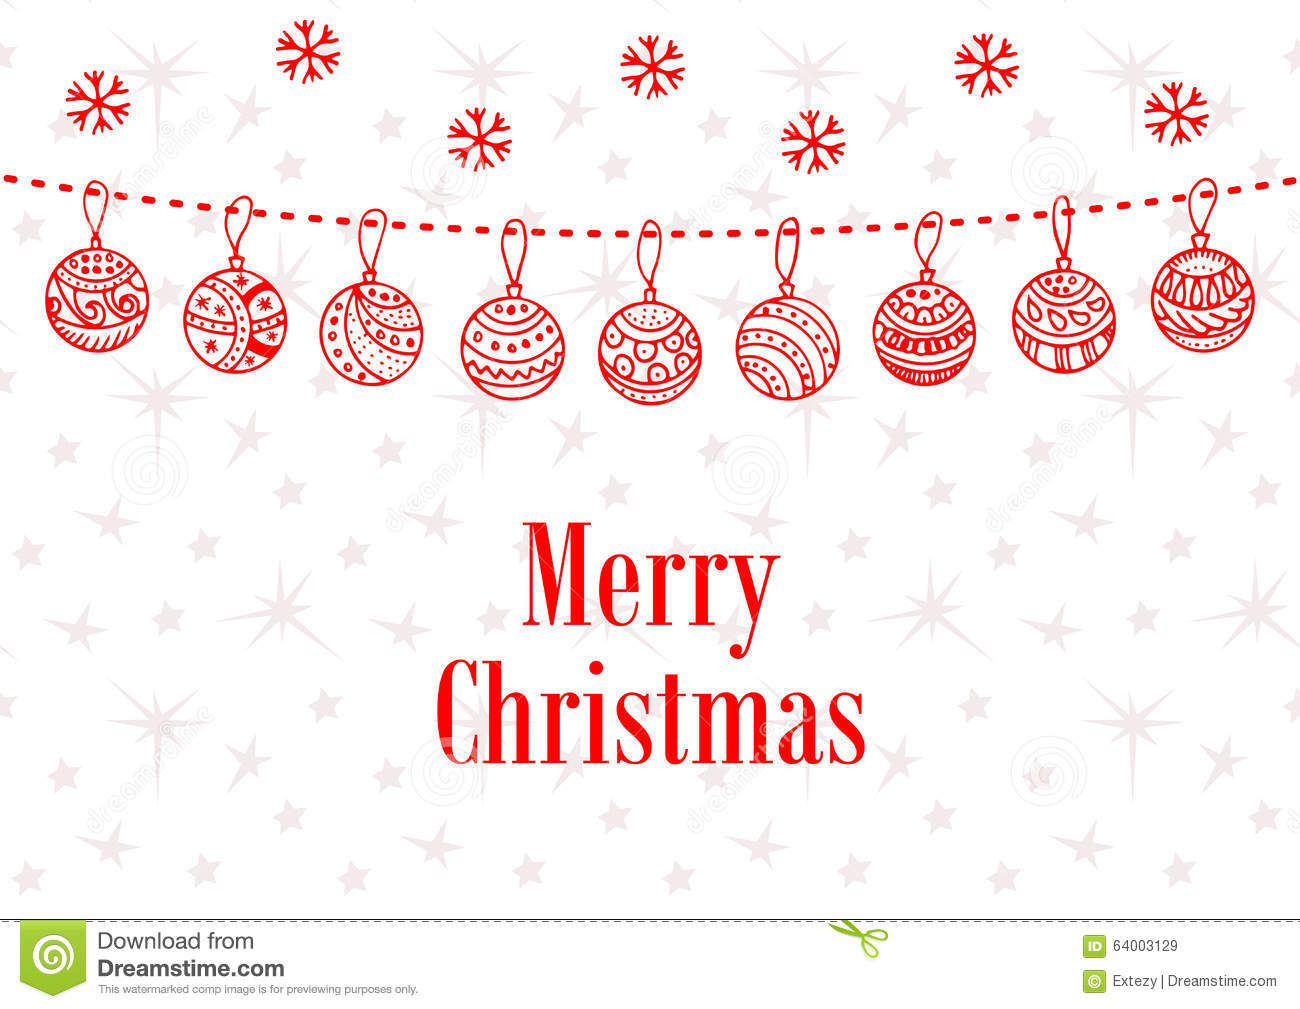 merry christmas ball vector background doodle stock vector merry christmas ball vector background doodle